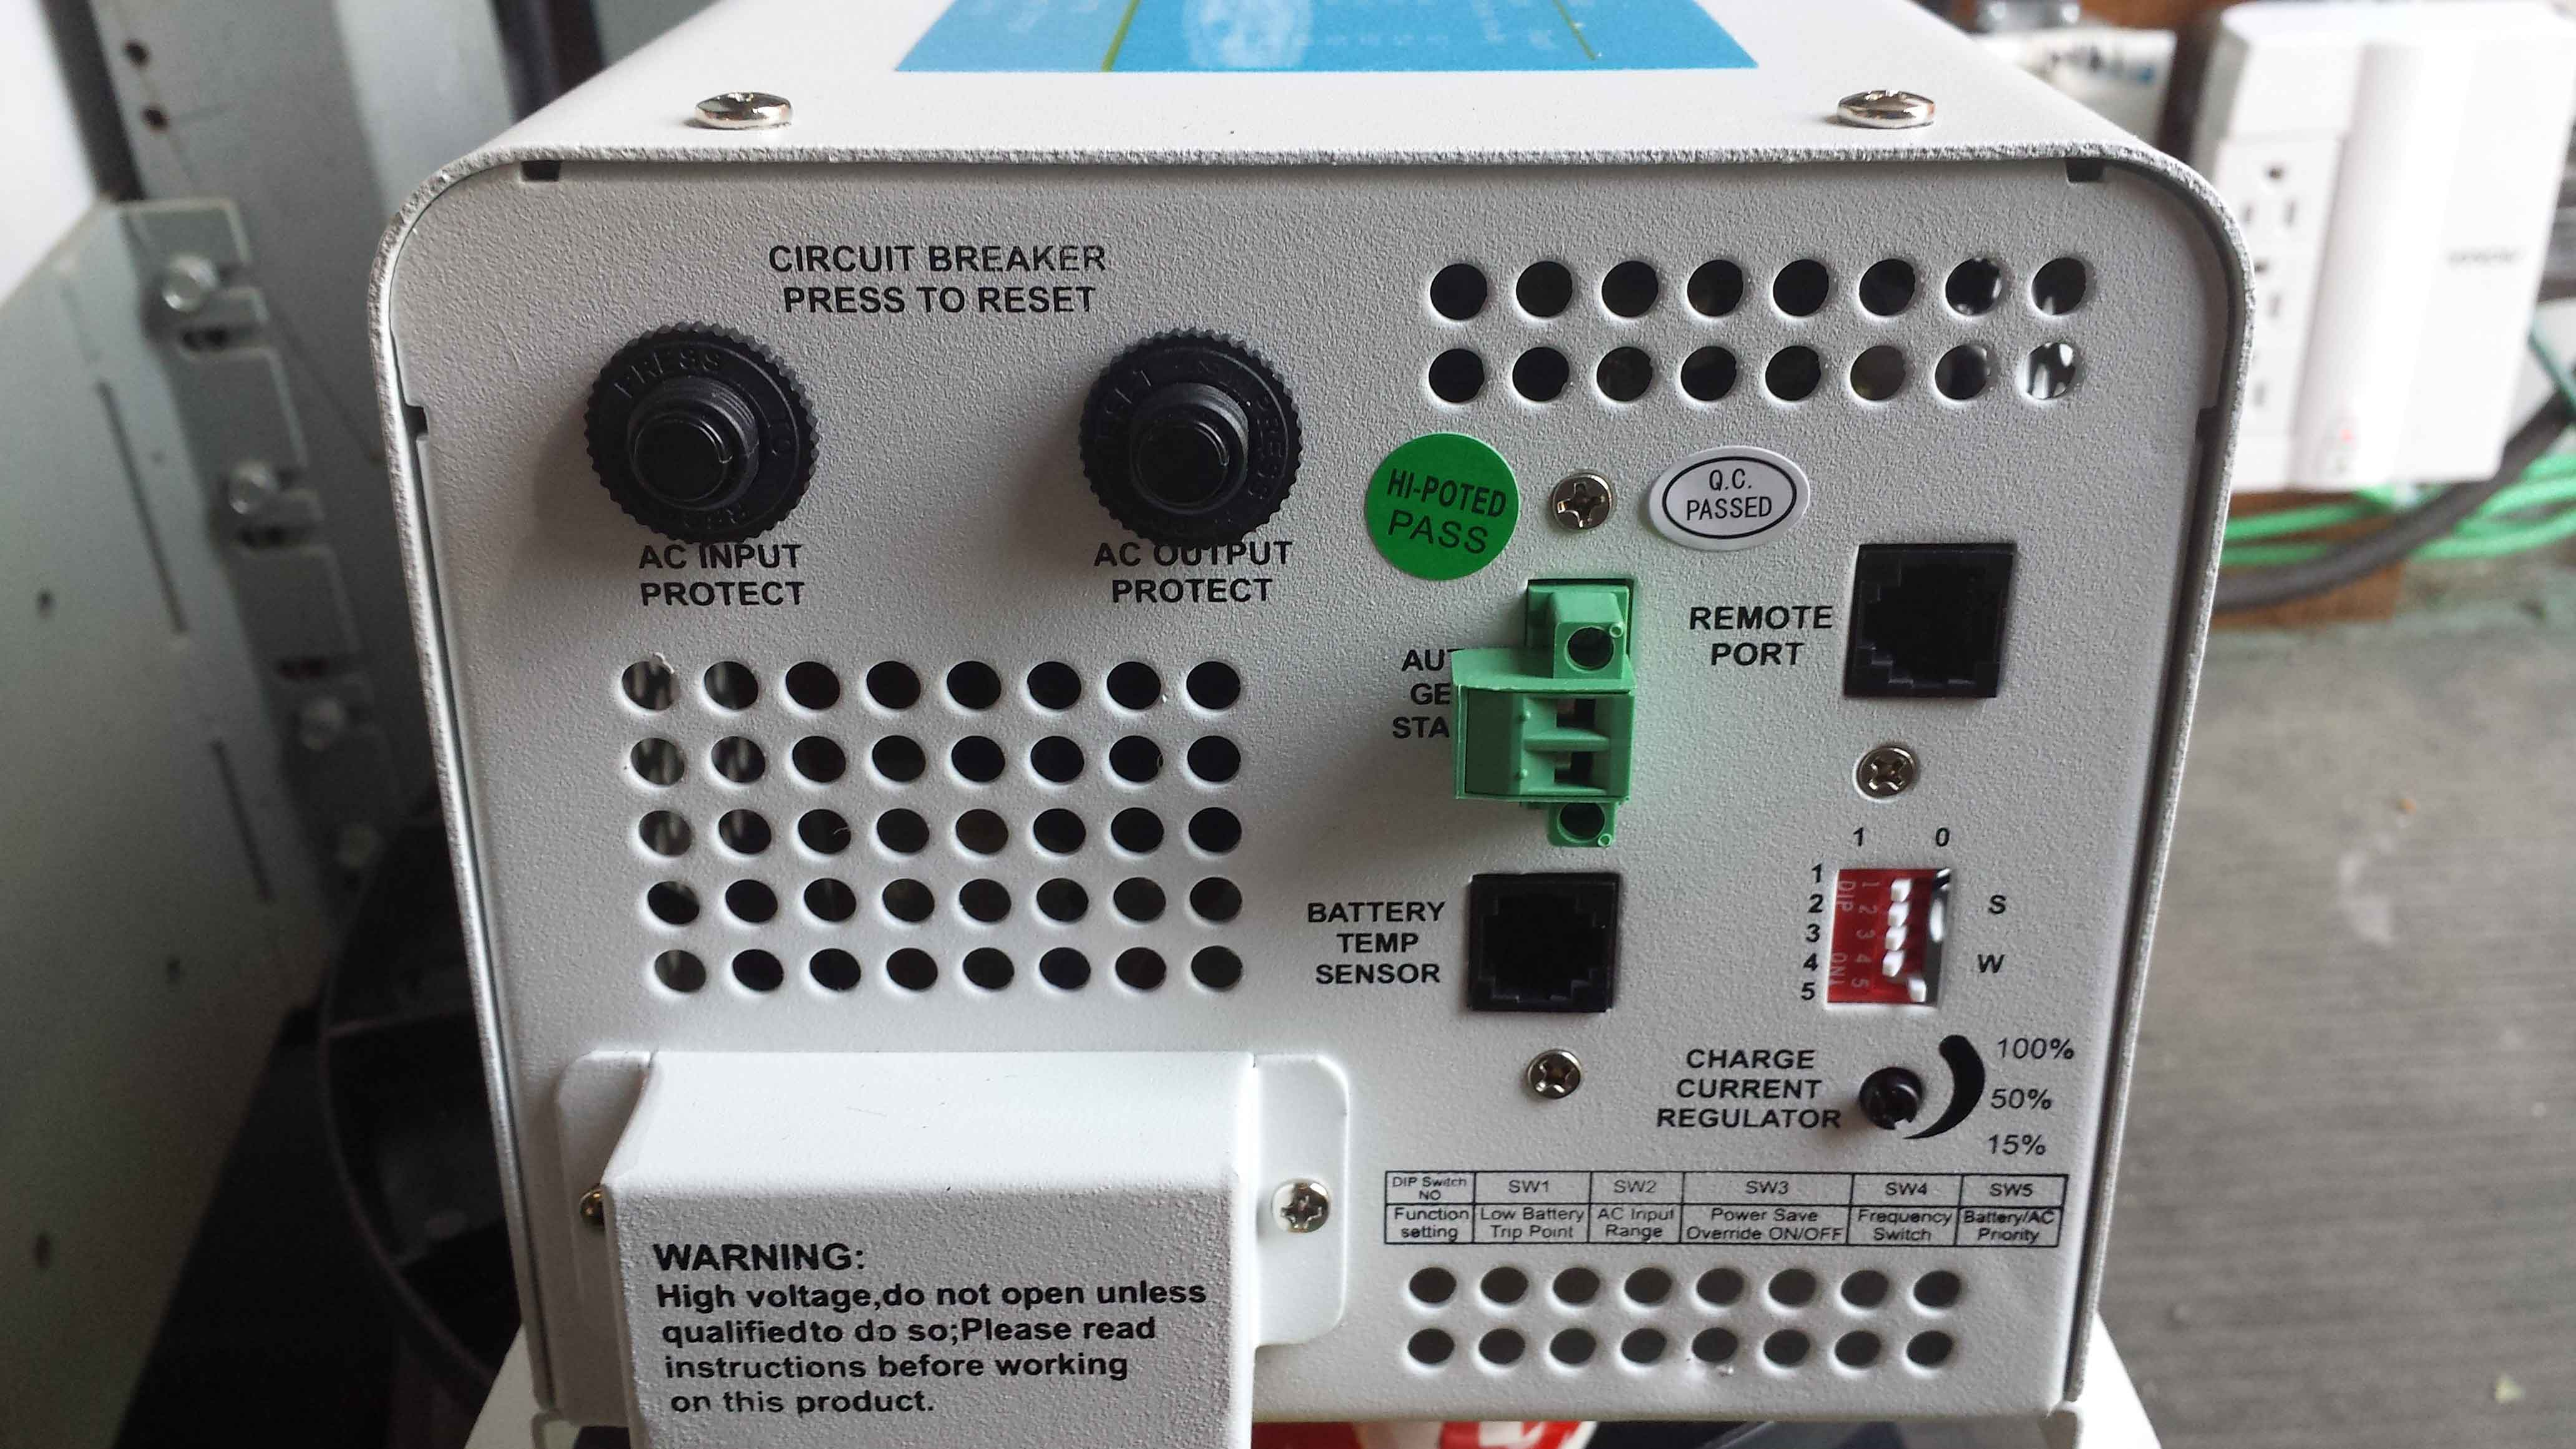 Inverters Burnaby Bc Power Inverter Circuit With Built In Charger Electronic These Have Breakers To Protect Your Installation Adjustable Charging From 0 100 And Other Options Including Hardwire Connection